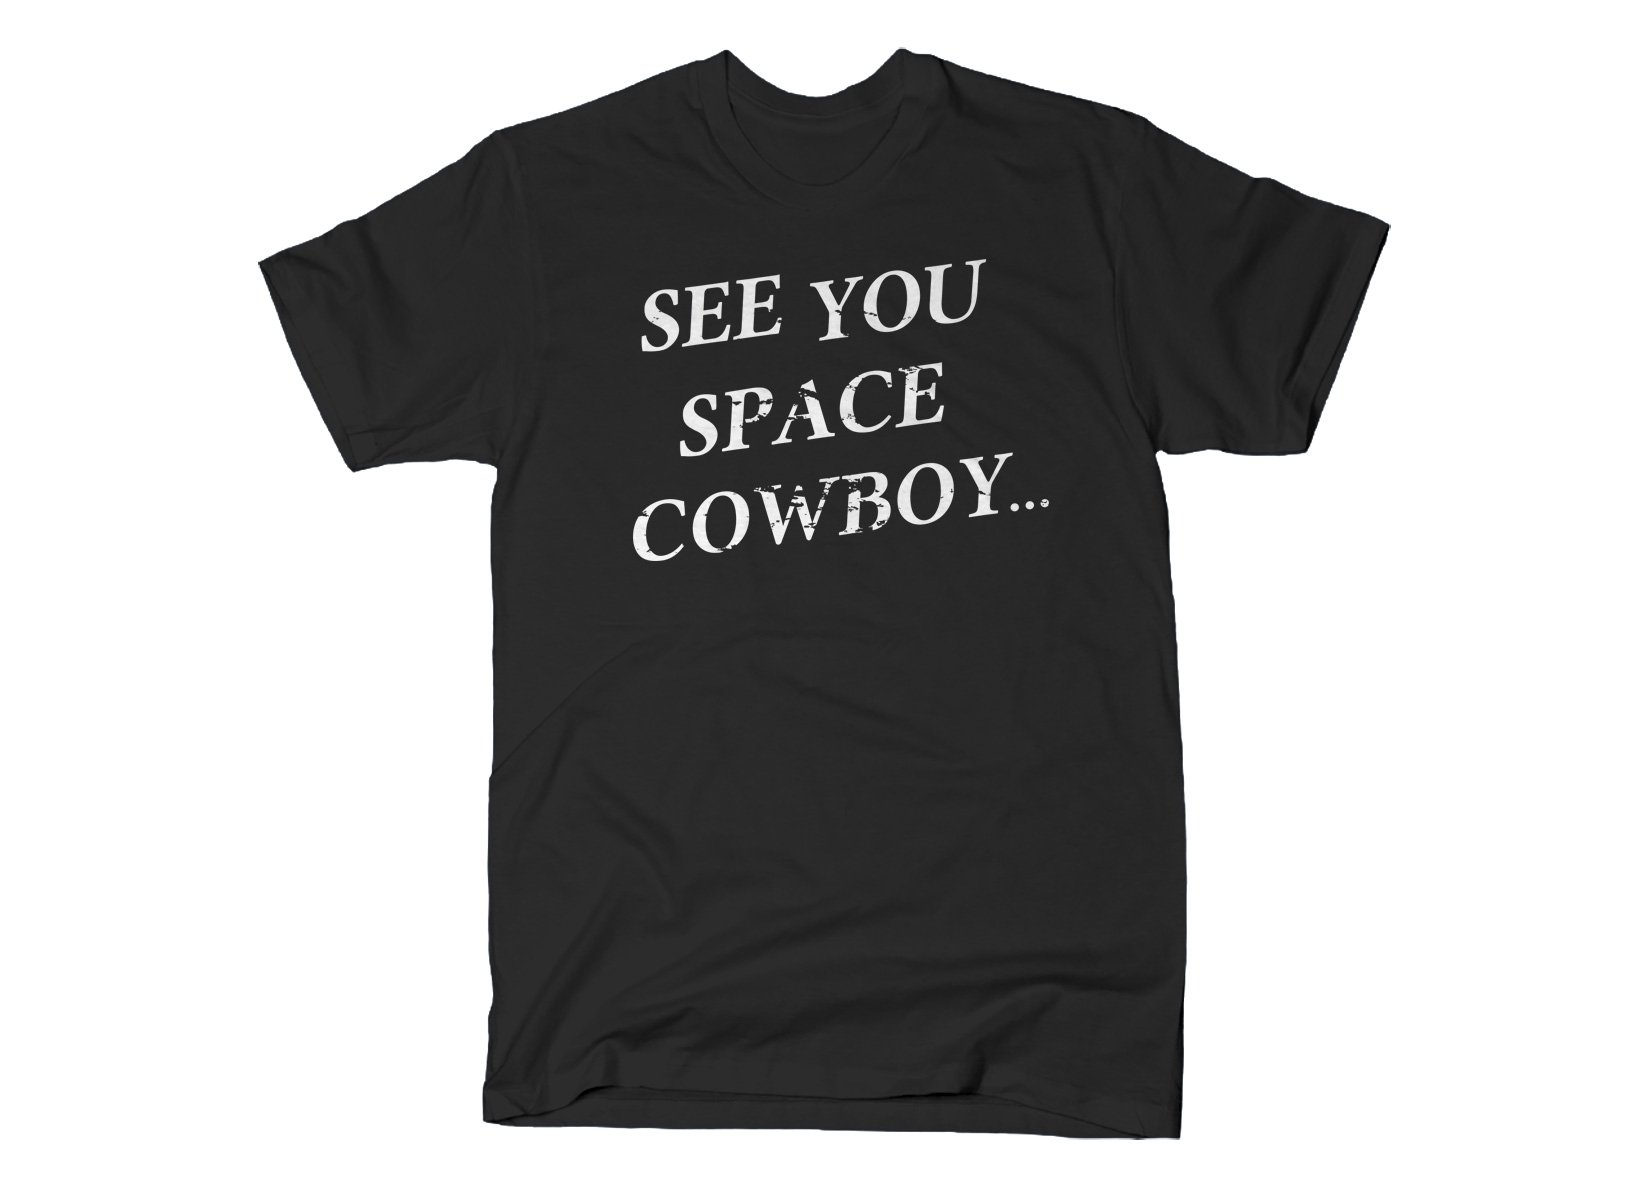 See You Space Cowboy on Mens T-Shirt